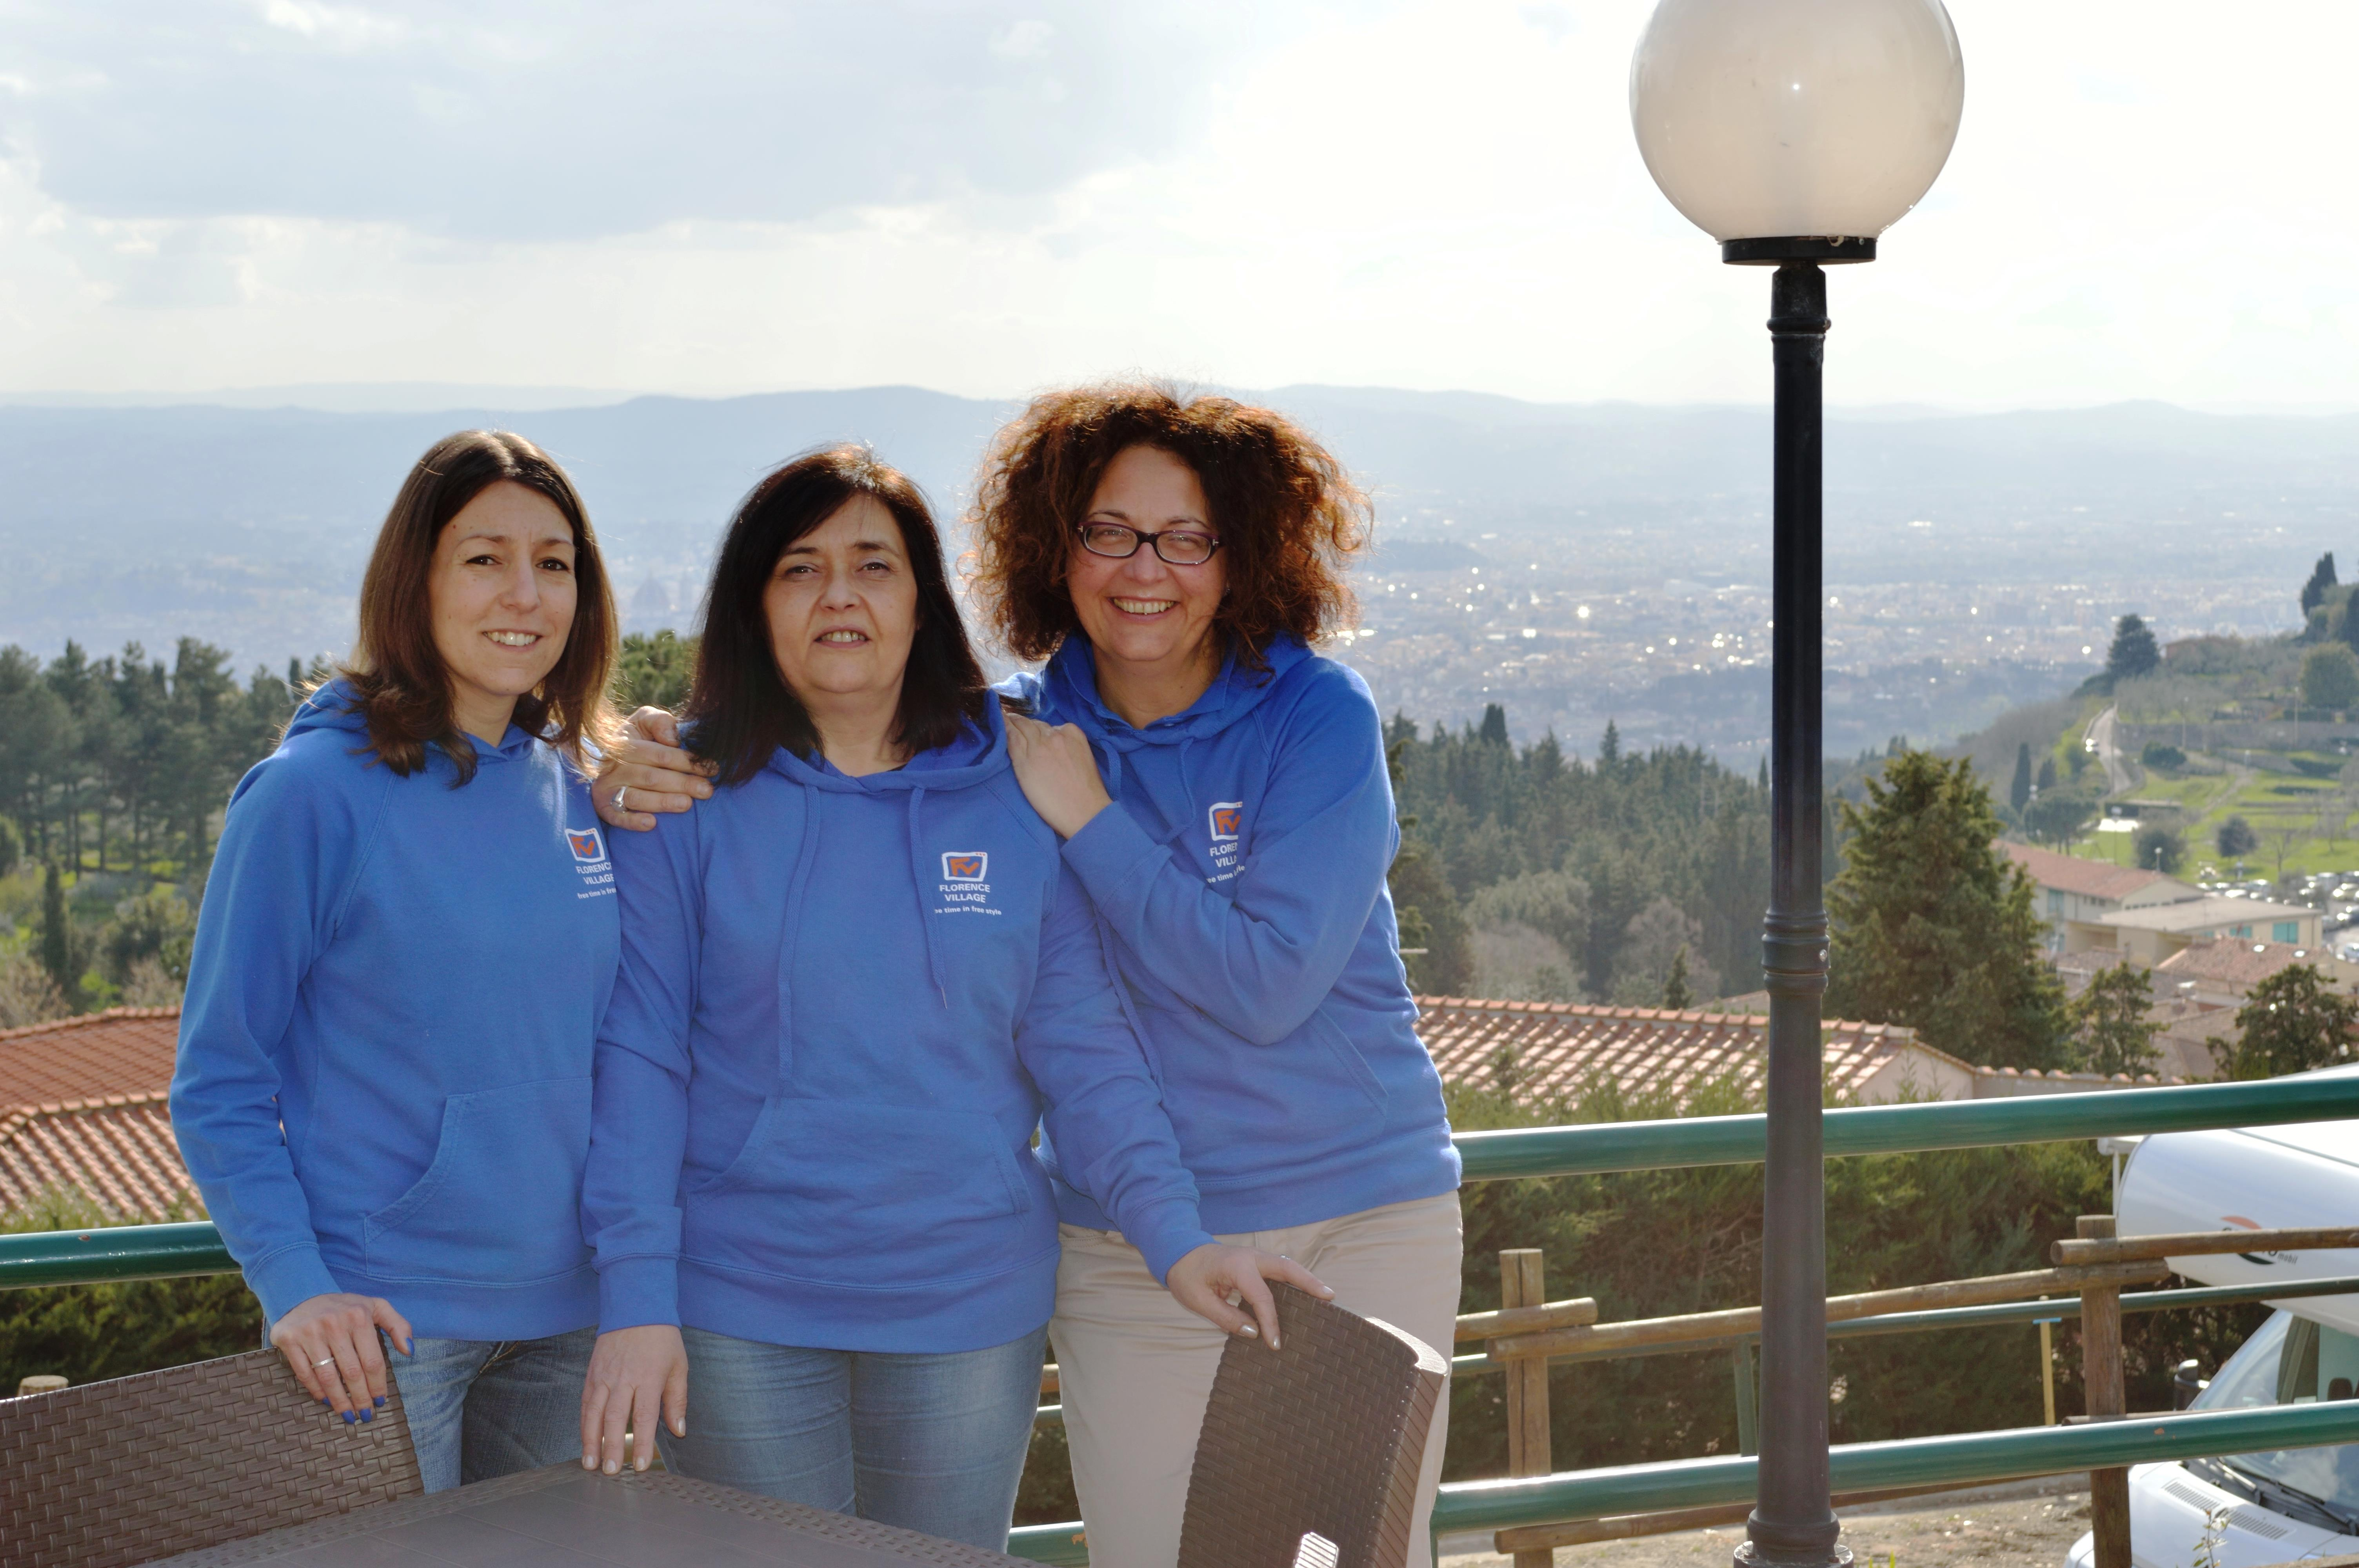 Equipe d'accueil Camping Village  Panoramico Fiesole - Fiesole